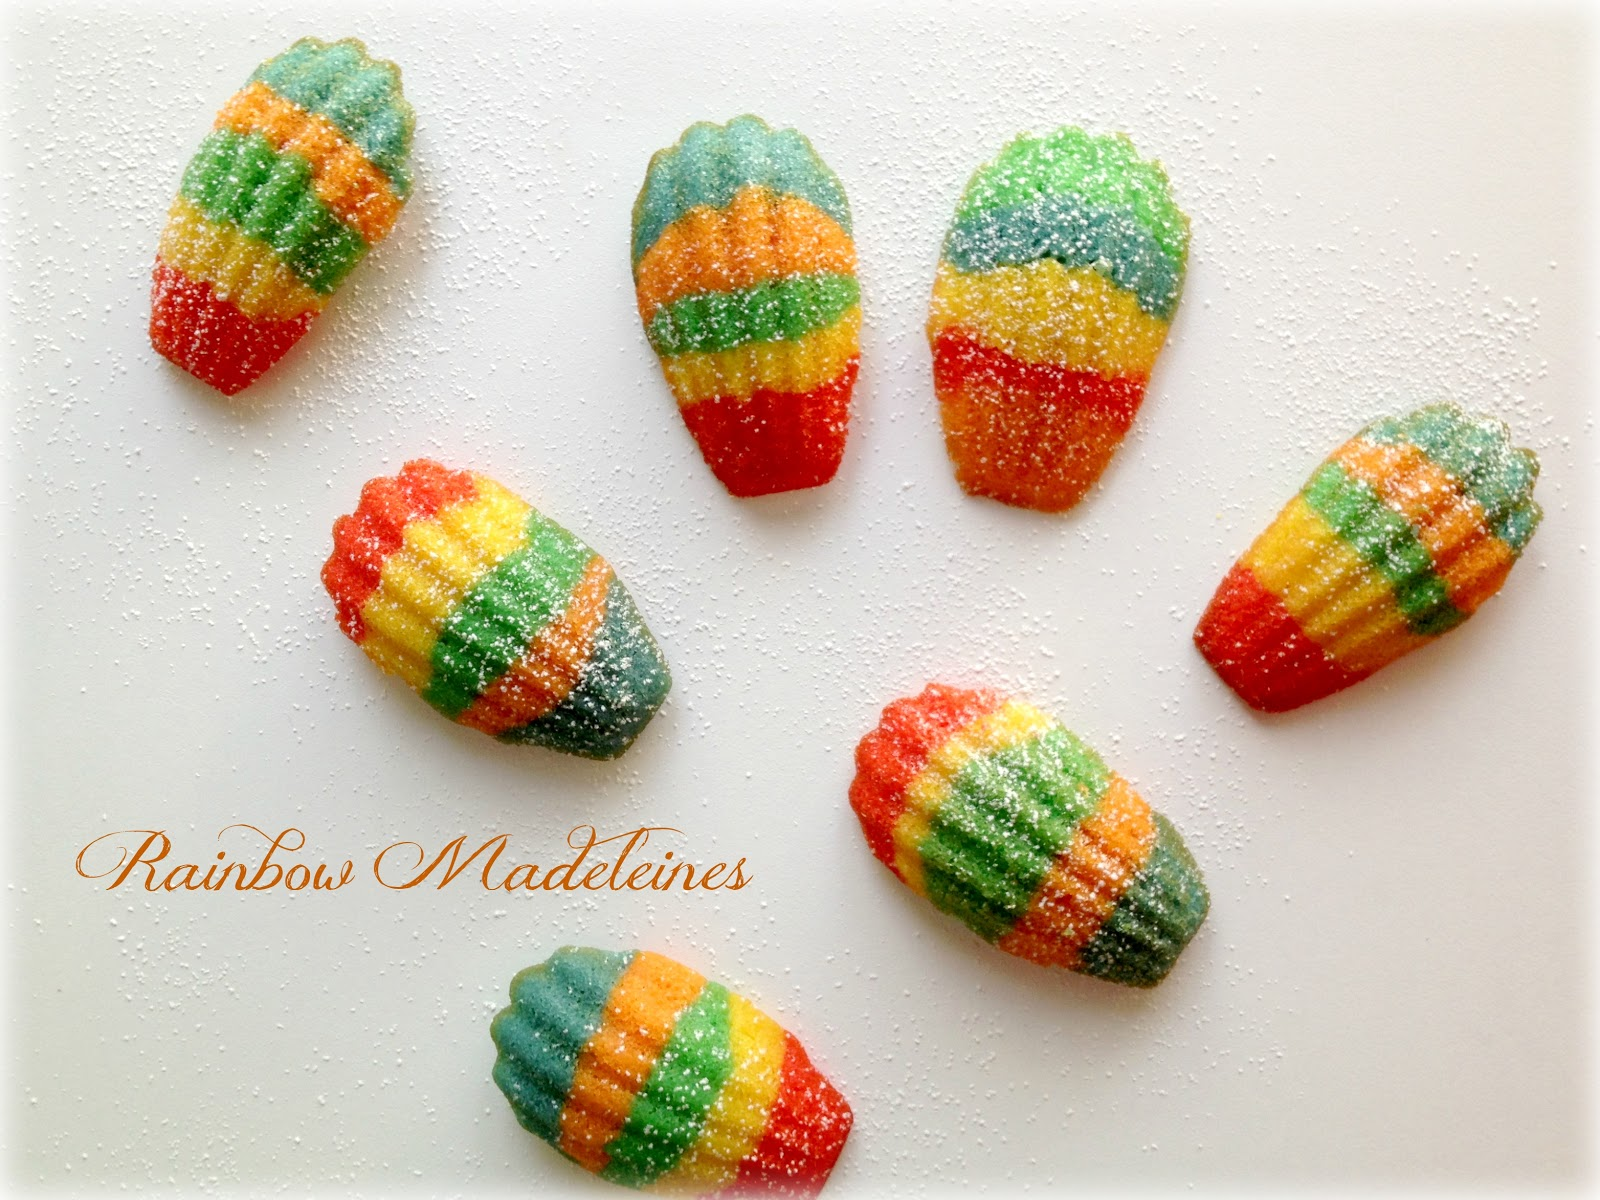 Sugar Swings Serve Some rainbow madeleines for a virtual baby